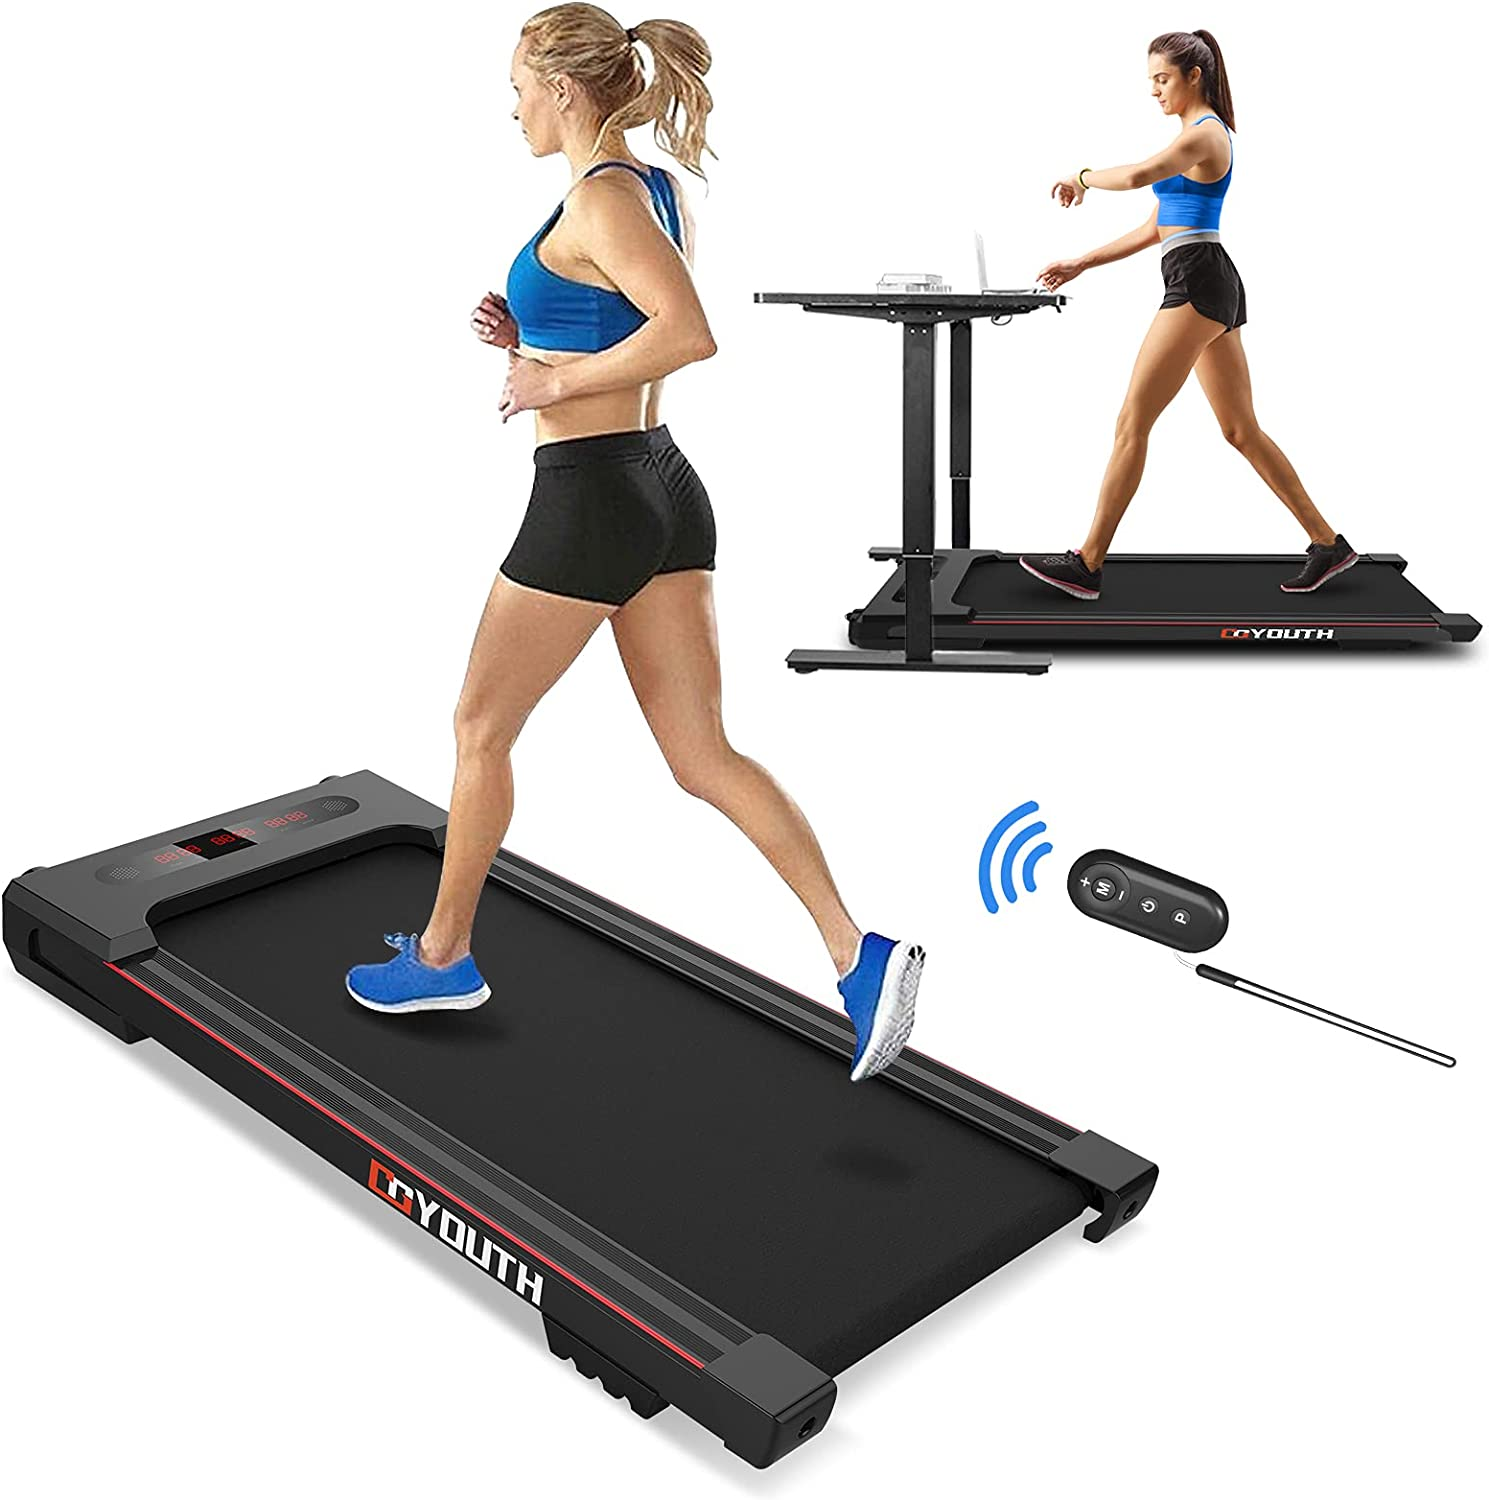 Portable Treadmill 2.25HP Under Walking Machine Desk Popular Limited price product Electric